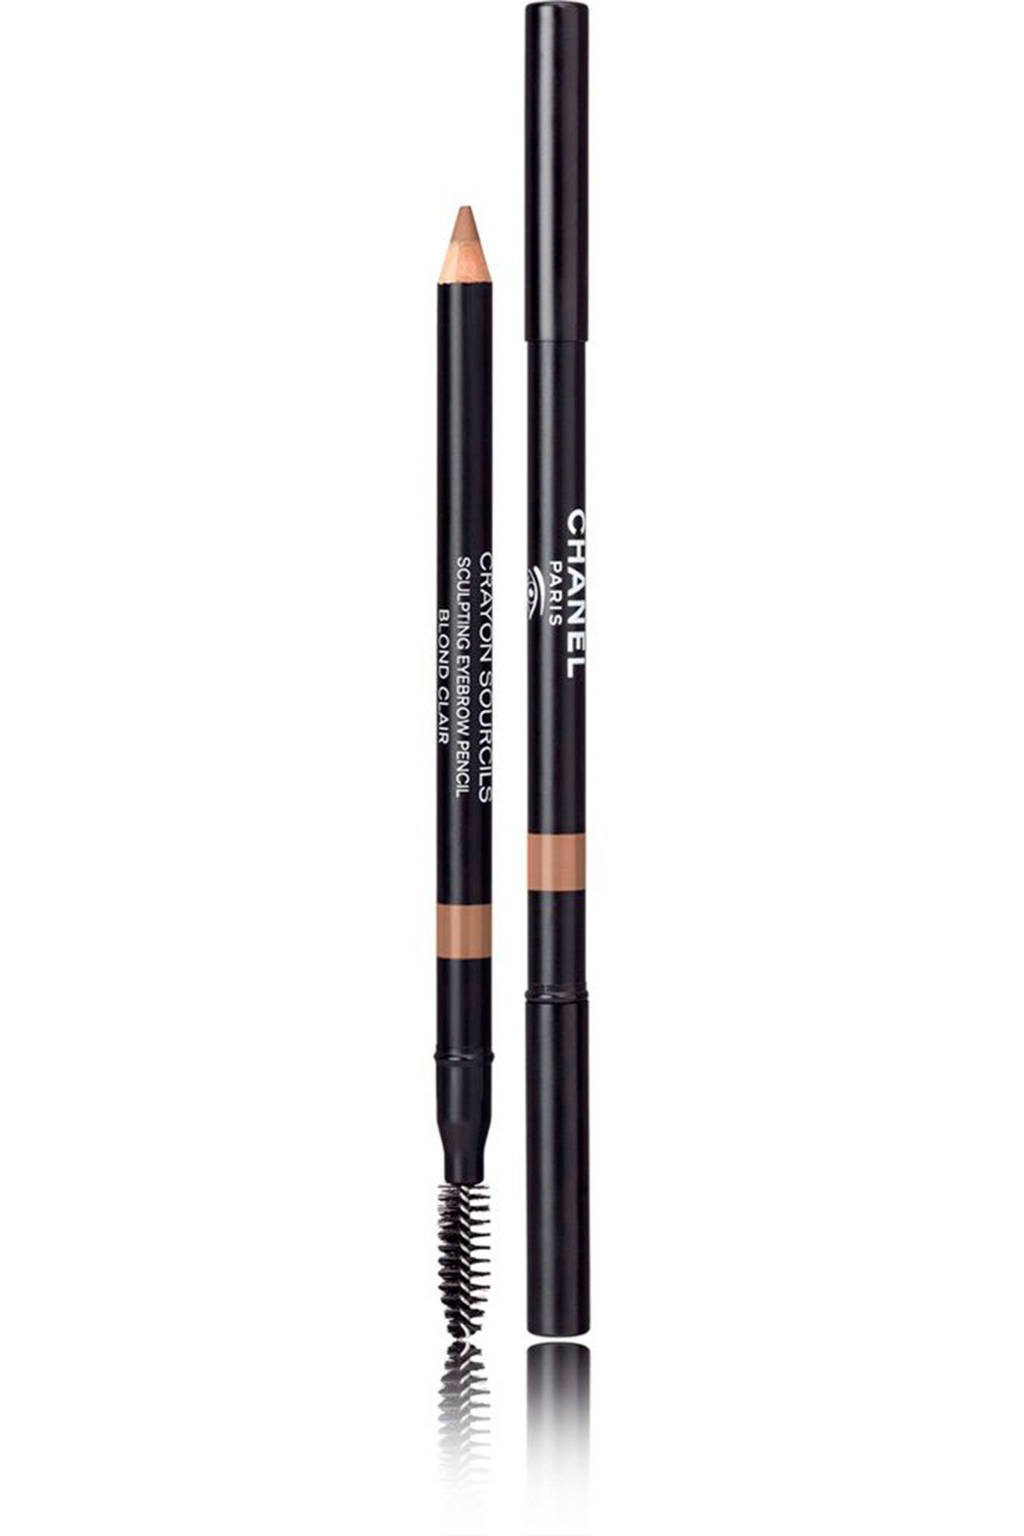 Chanel Crayon Sourcil wenkbrauwpotlood - 10 Blond Clair